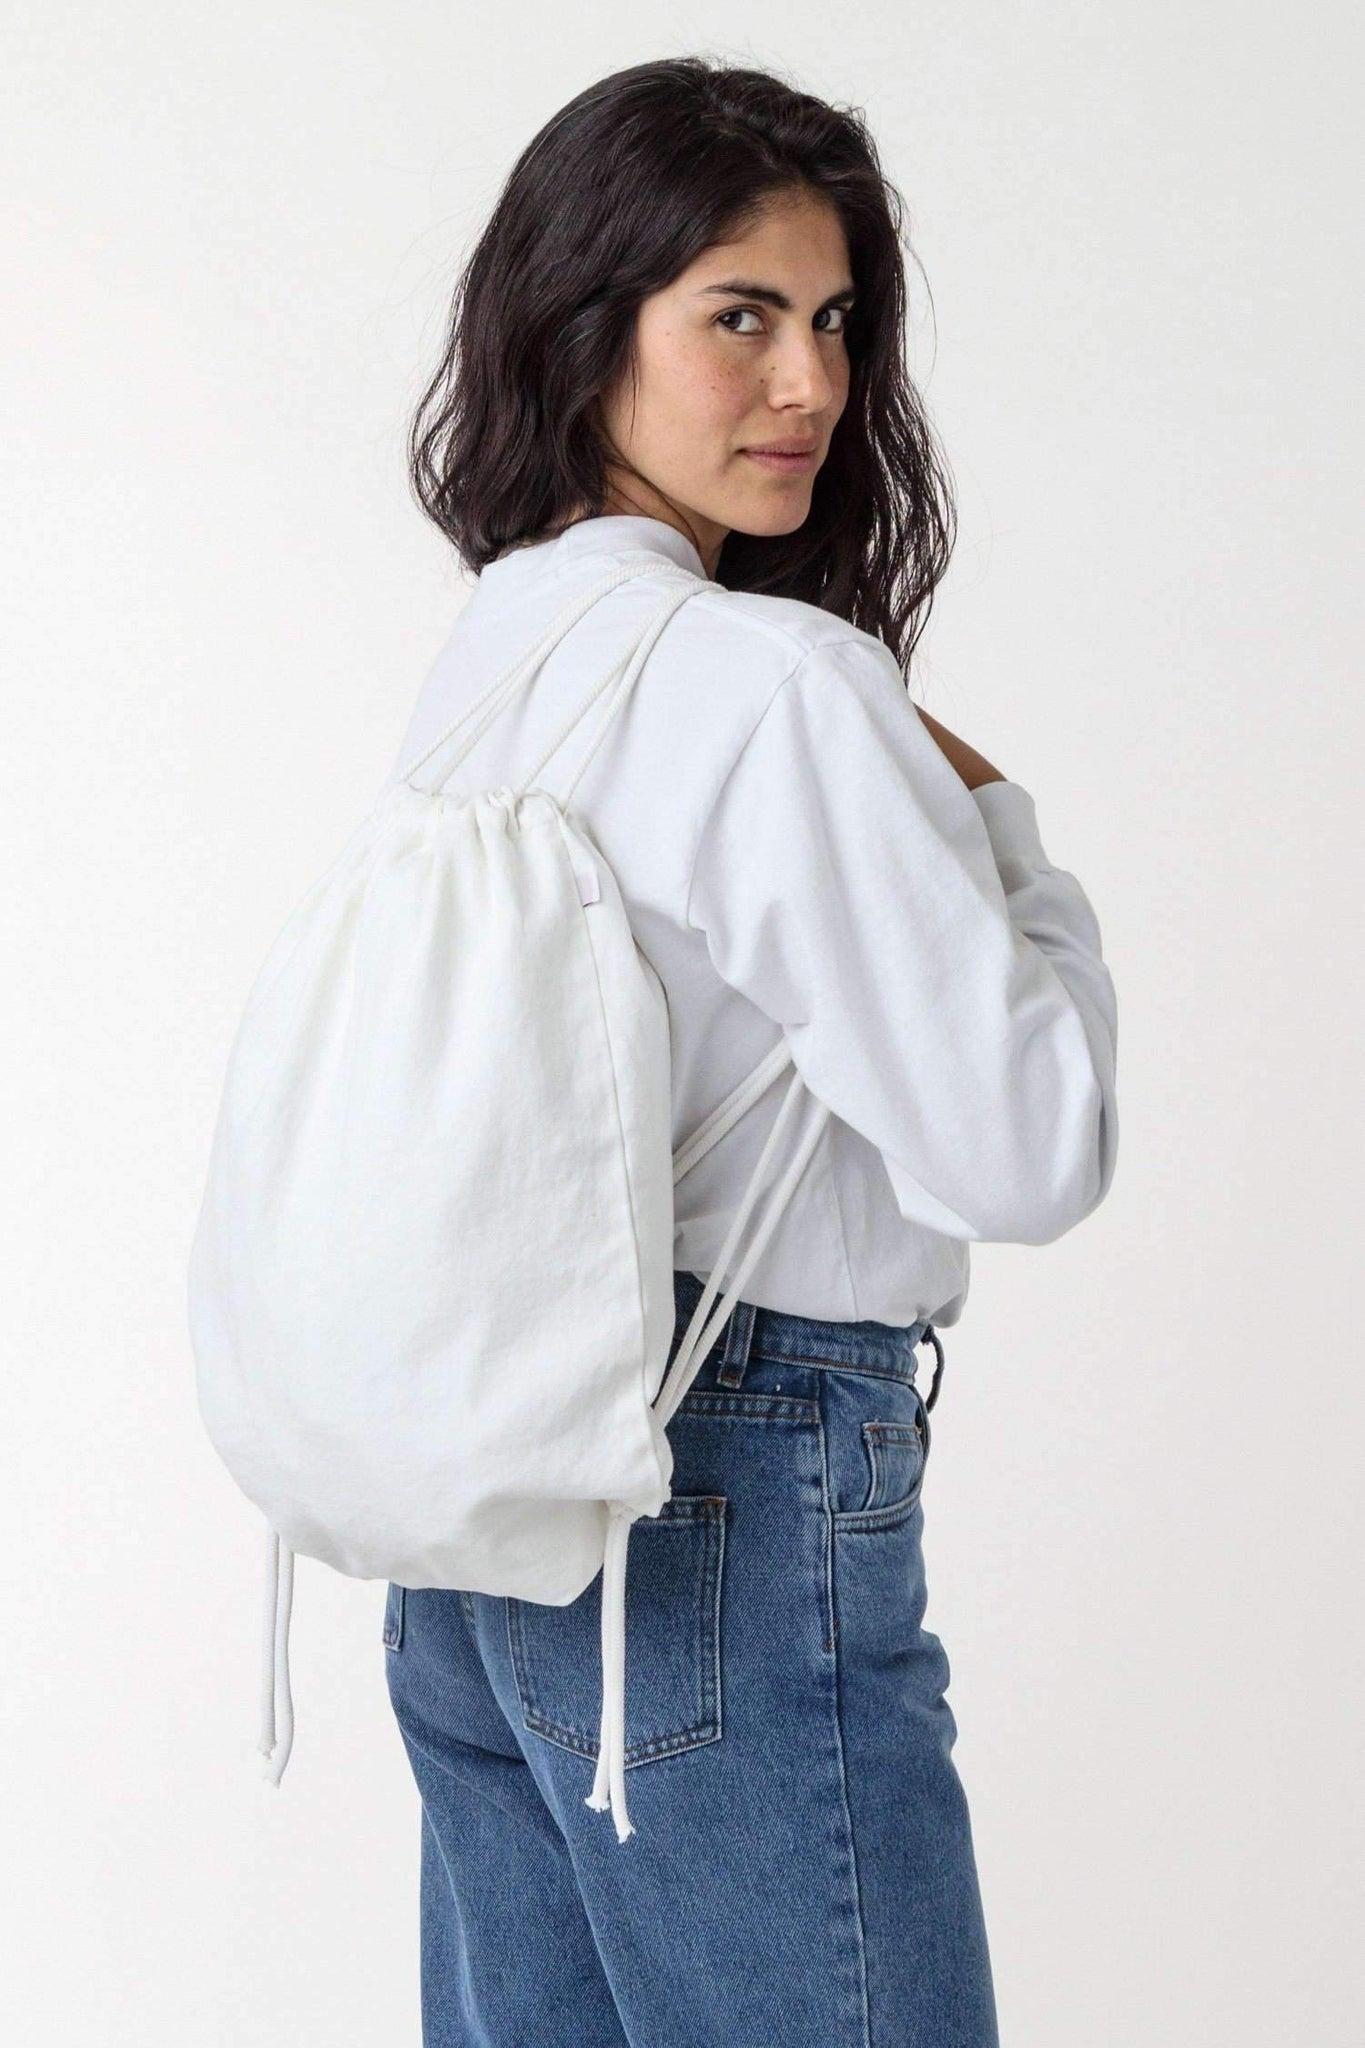 BD09 - Bull Denim Drawstring Backpack Bags Los Angeles Apparel Off-White